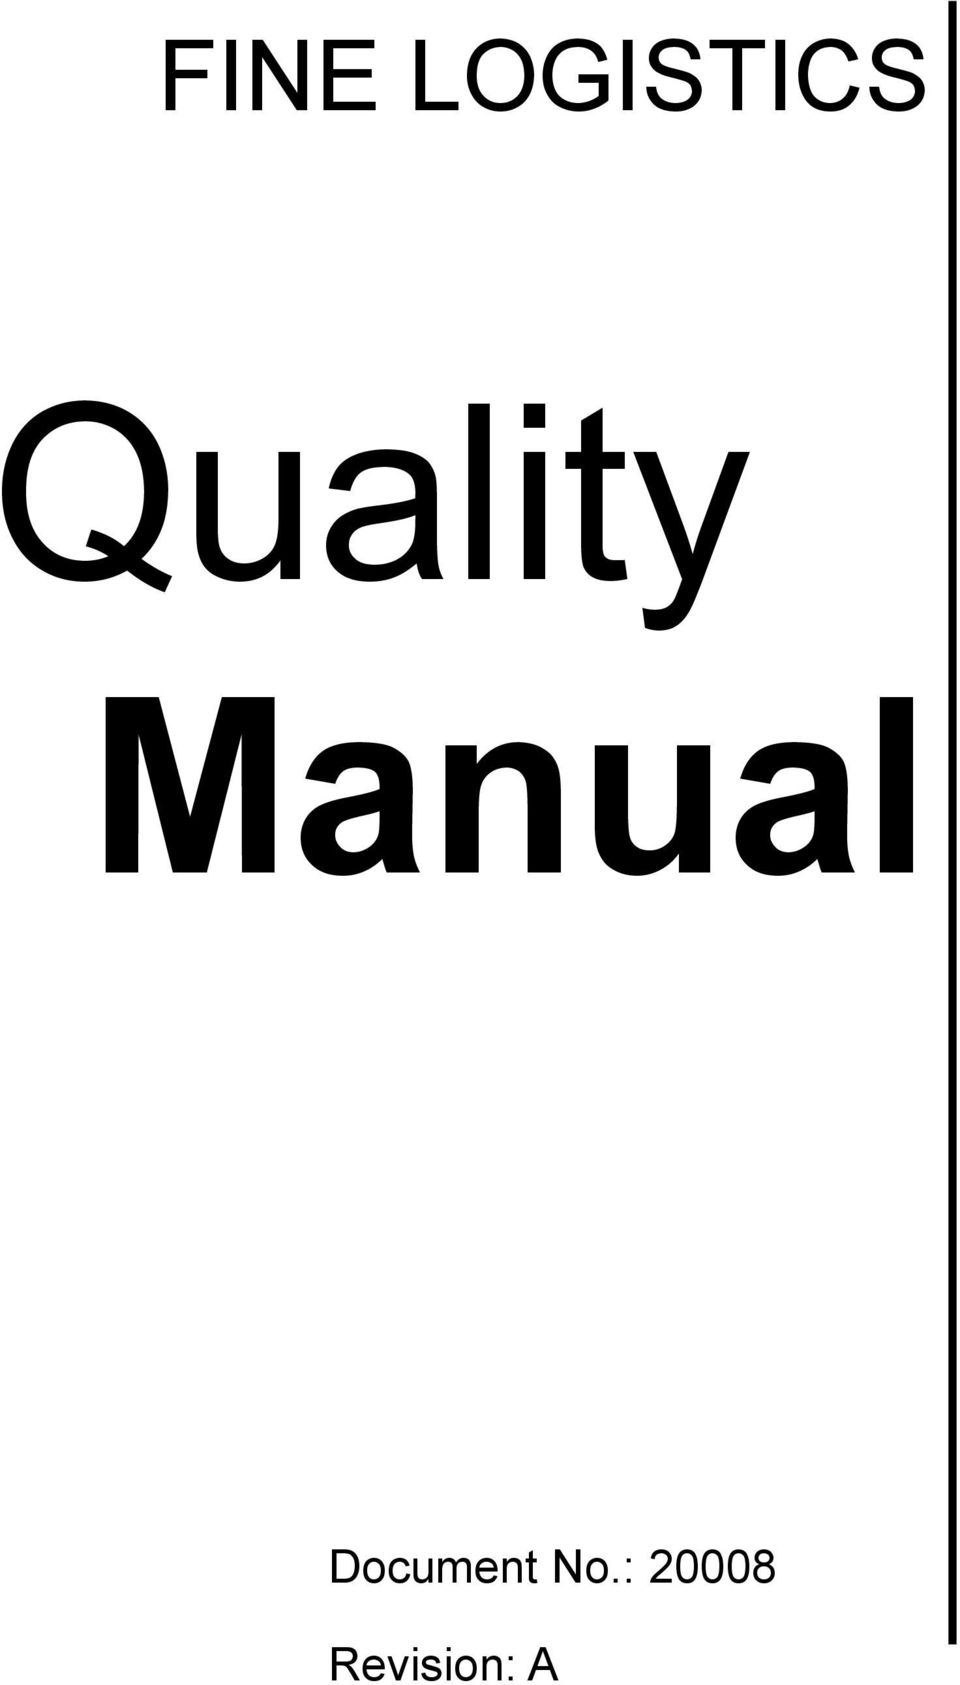 FINE LOGISTICS. Quality Manual. Document No.: Revision: A